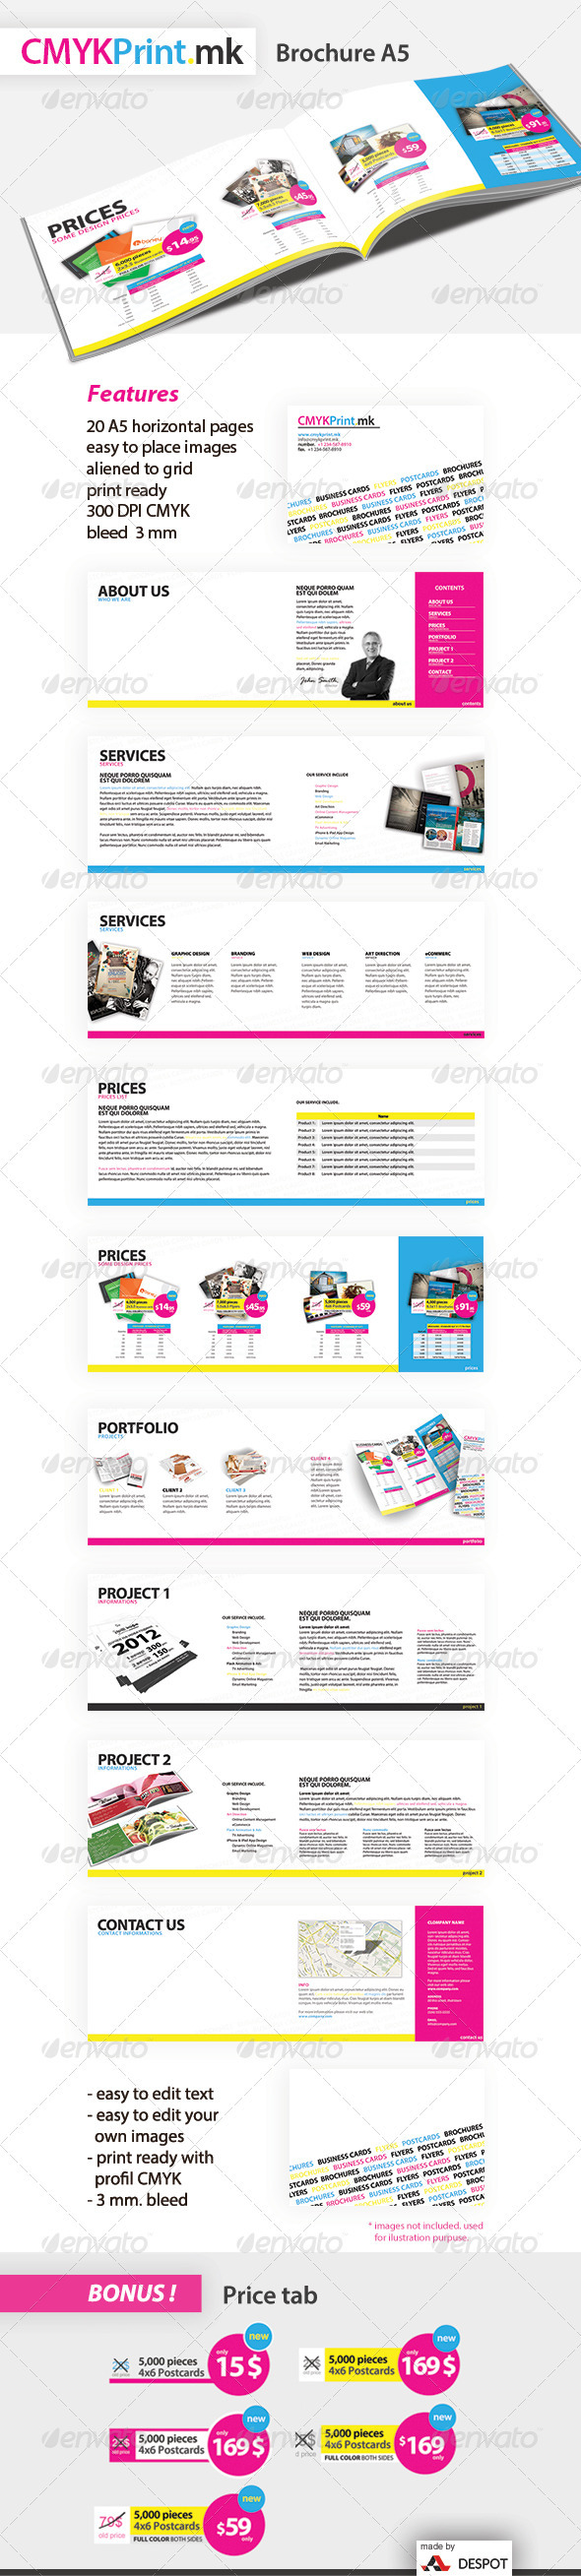 a5 brochure template - cmyk print brochure a5 graphicriver